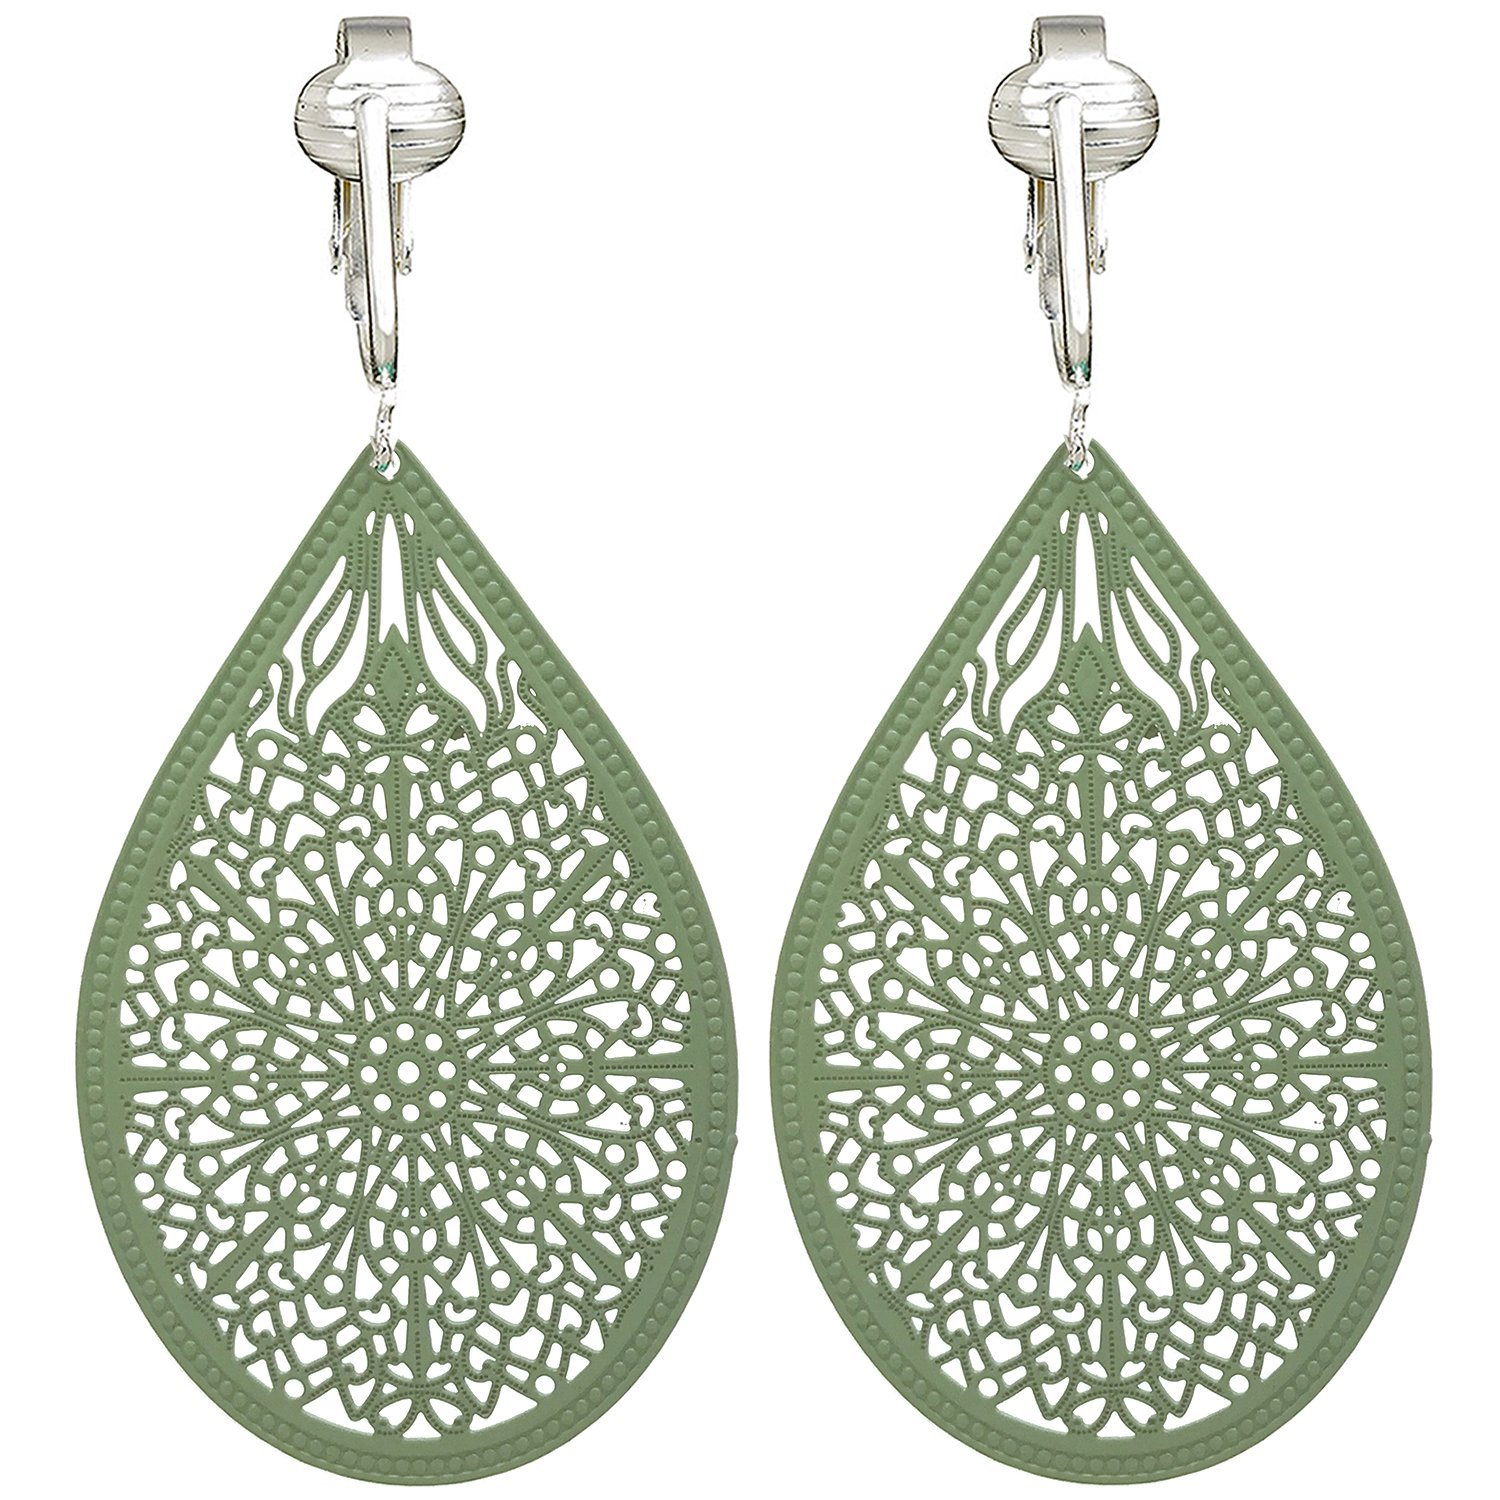 Lovely Victorian Filigree Clip On Earrings for Women & Girls Clip-ons, Lightweight Teardrop Leaf Dangle (Green)